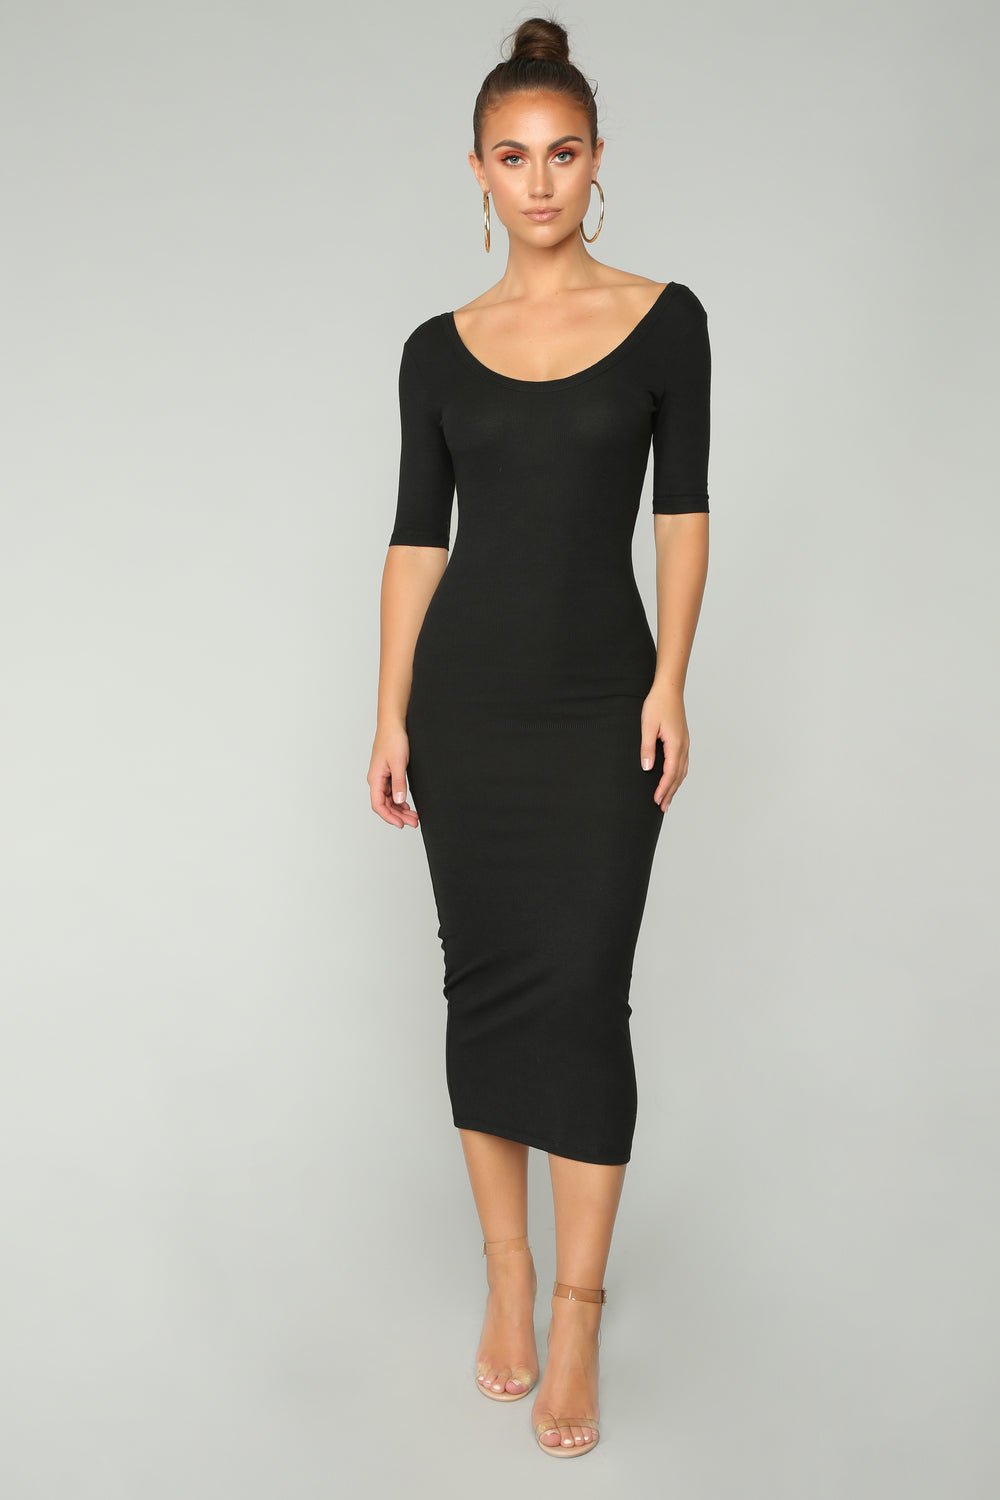 Cathleen Dress - Black